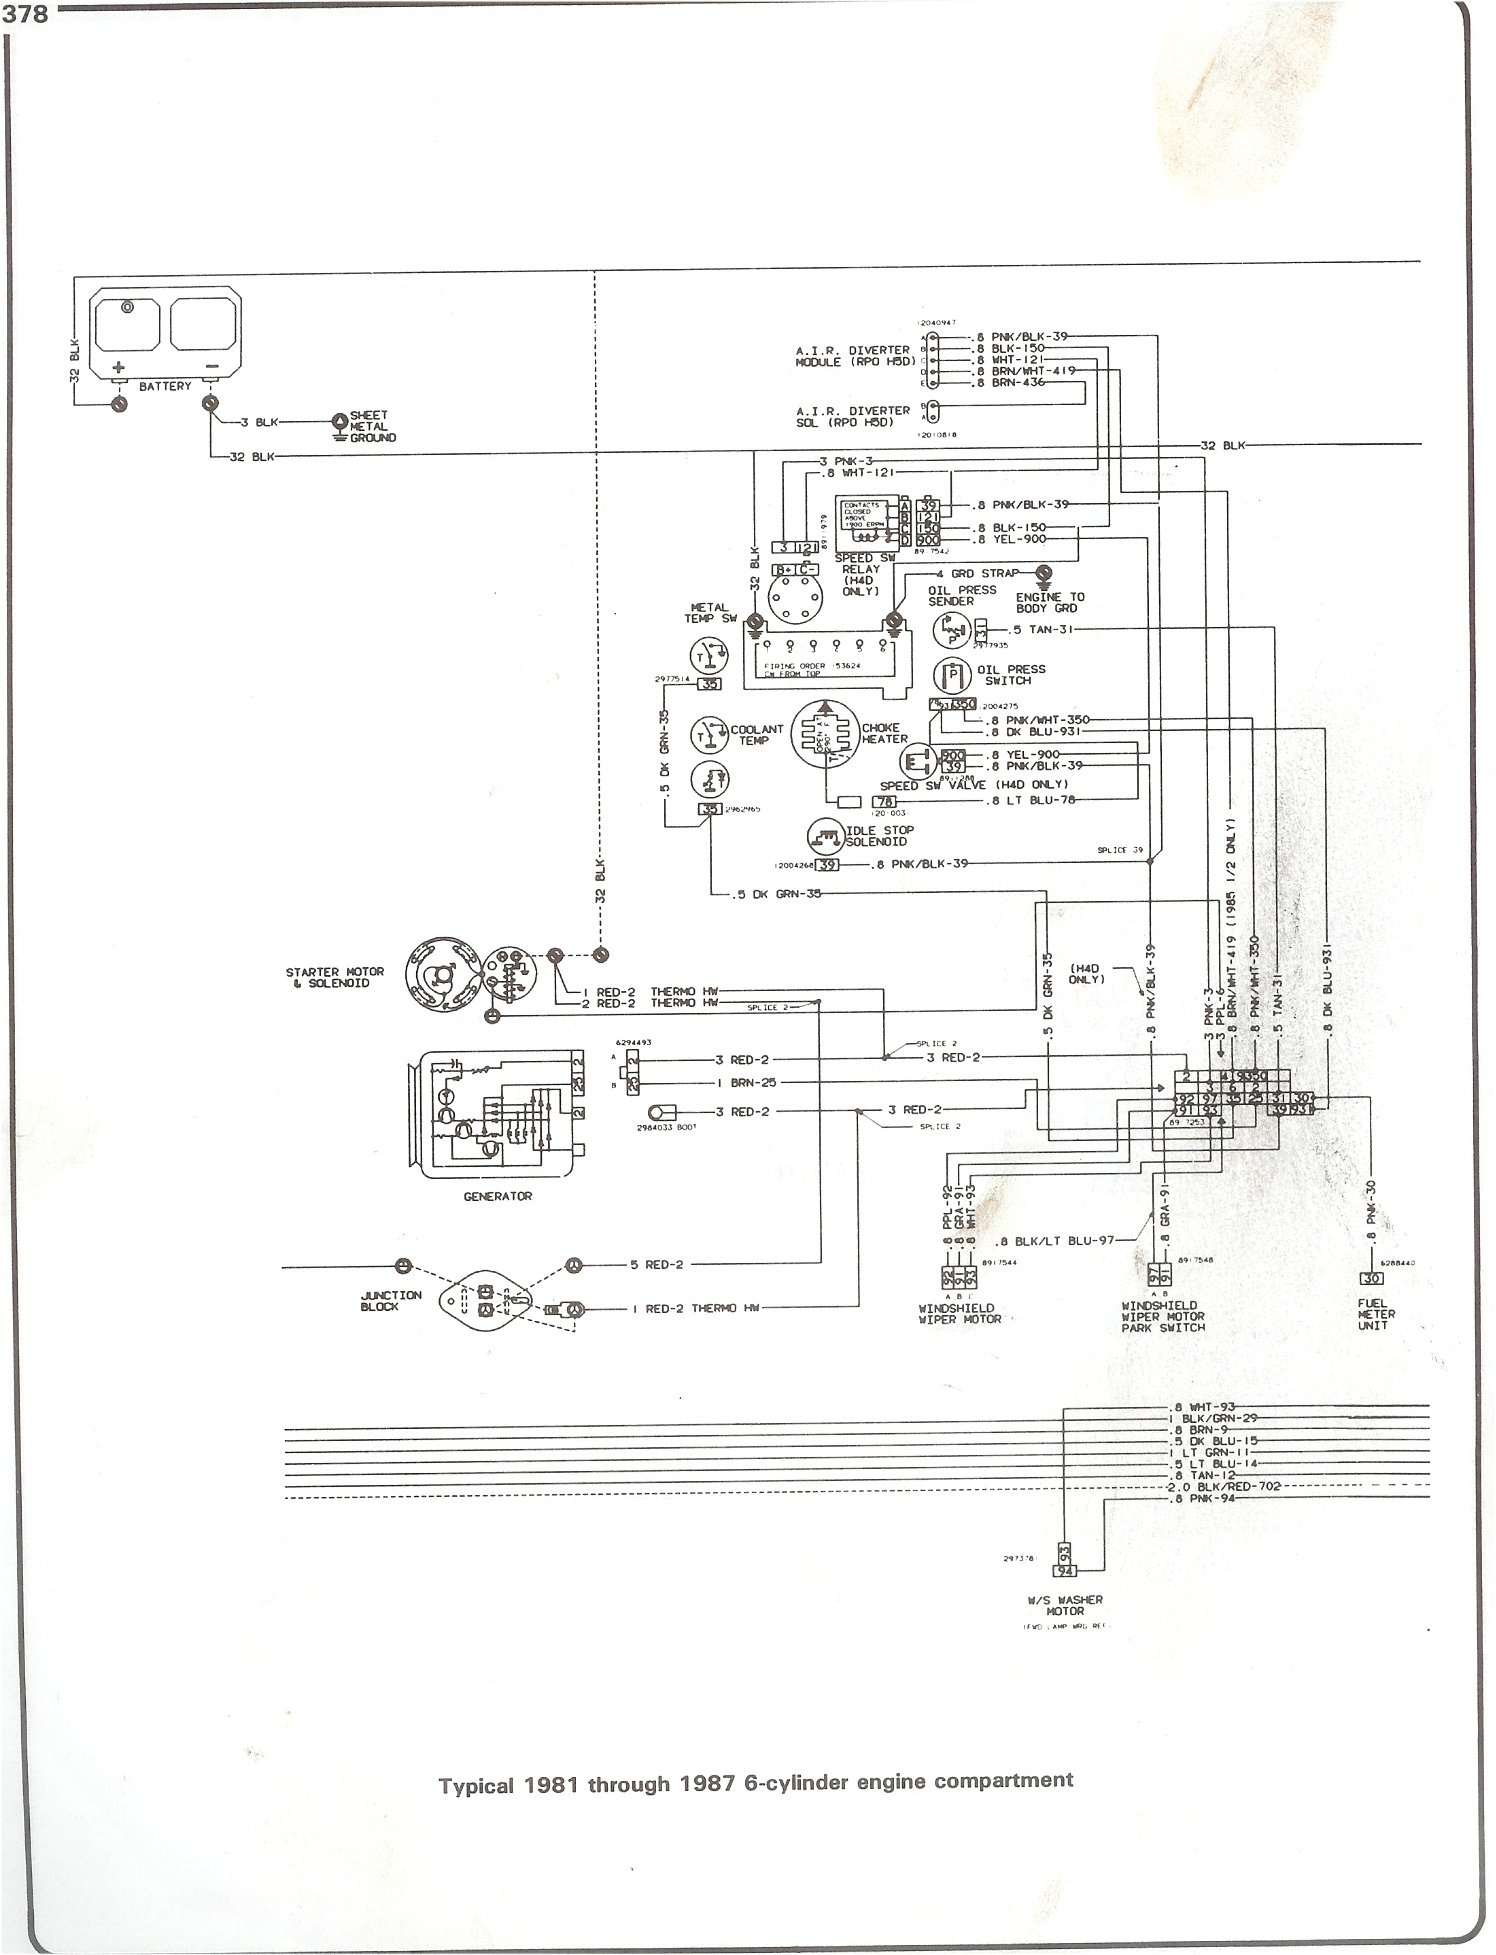 76 Chevy Wiring Diagram For 1976 Monza Fuel Pump Complete 73 87 Diagrams Ignition Switch